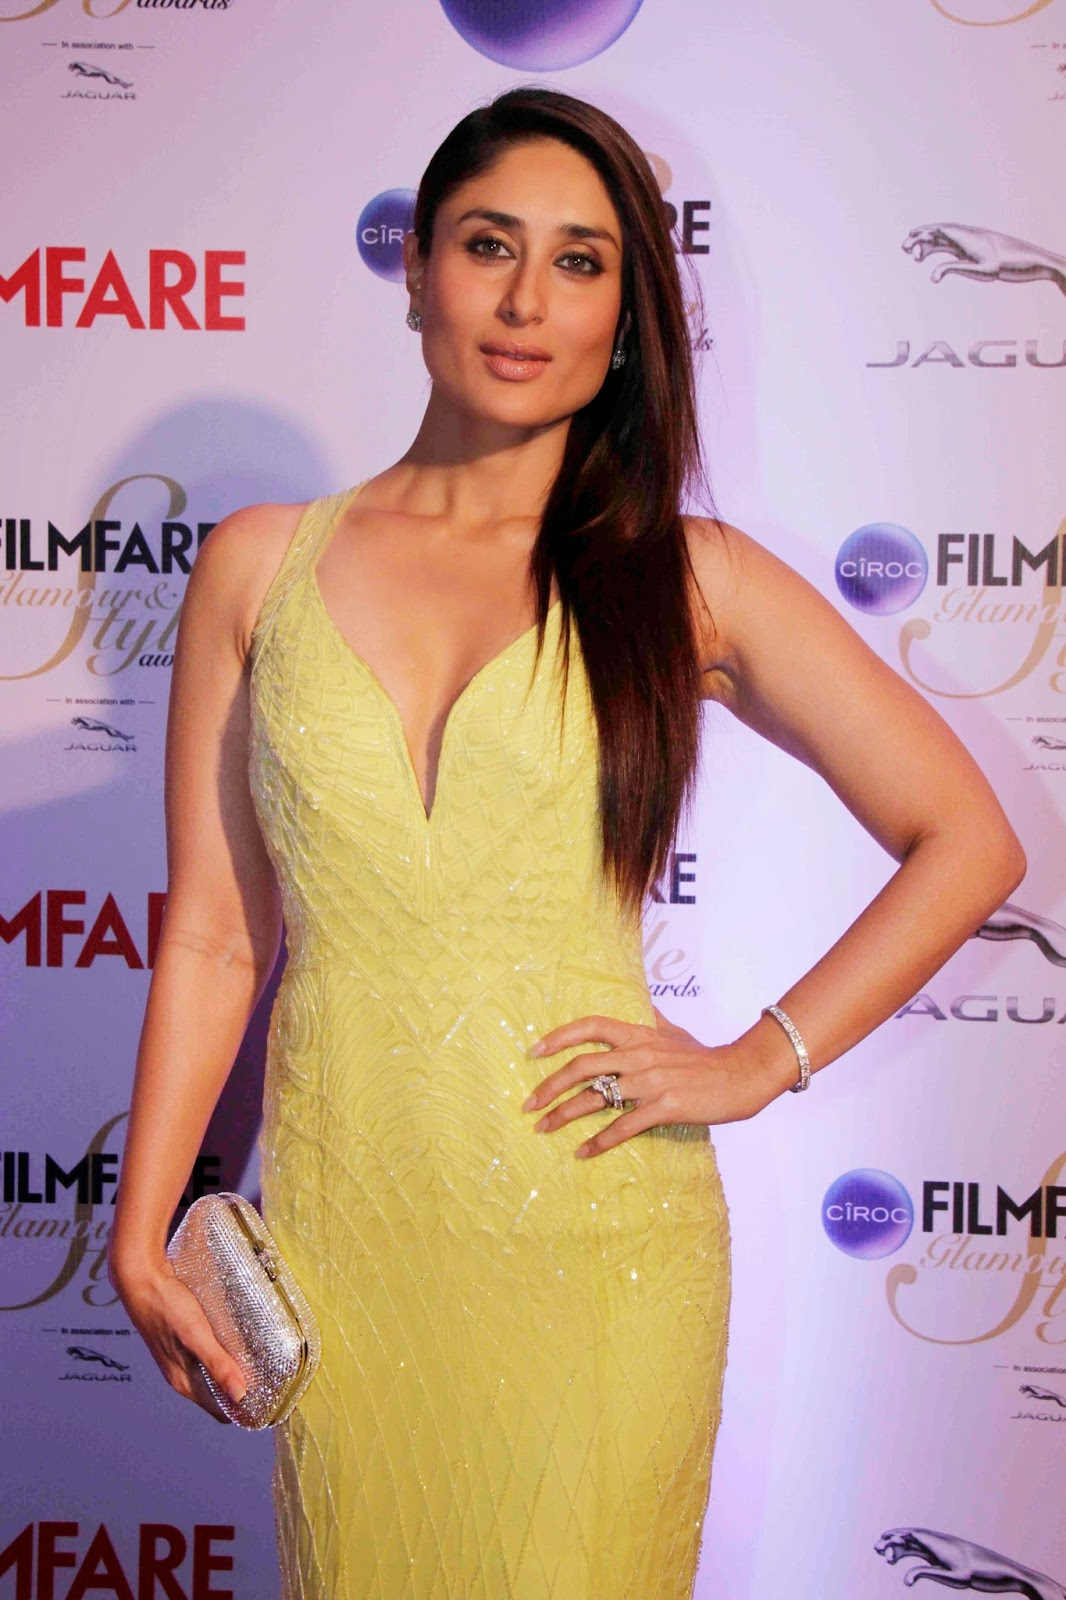 kareena kapoor sexy cleavage show in a yellow dress at ciroc filmfare